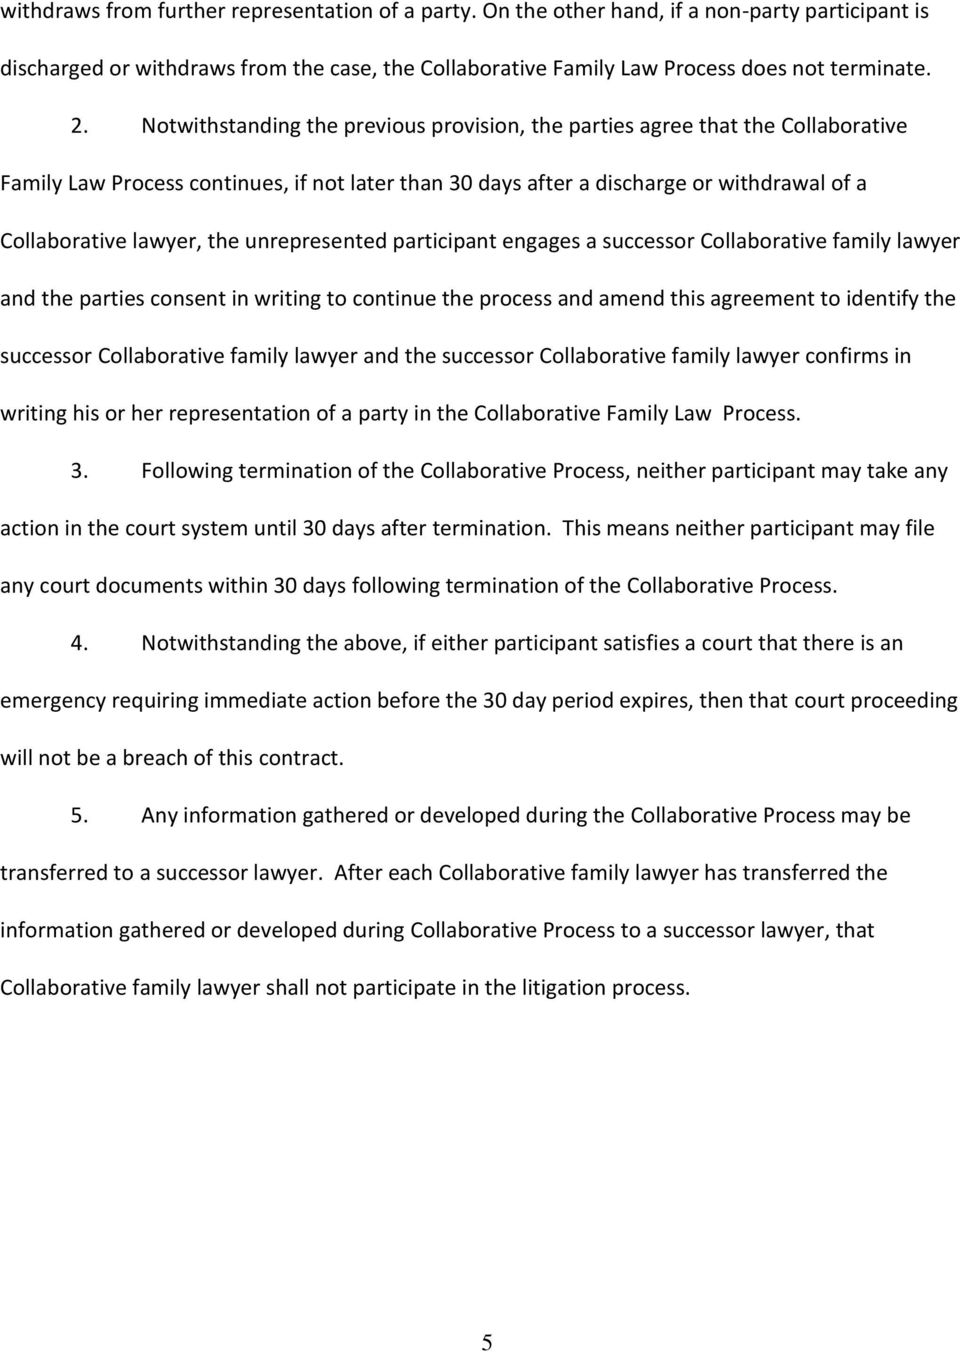 unrepresented participant engages a successor Collaborative family lawyer and the parties consent in writing to continue the process and amend this agreement to identify the successor Collaborative